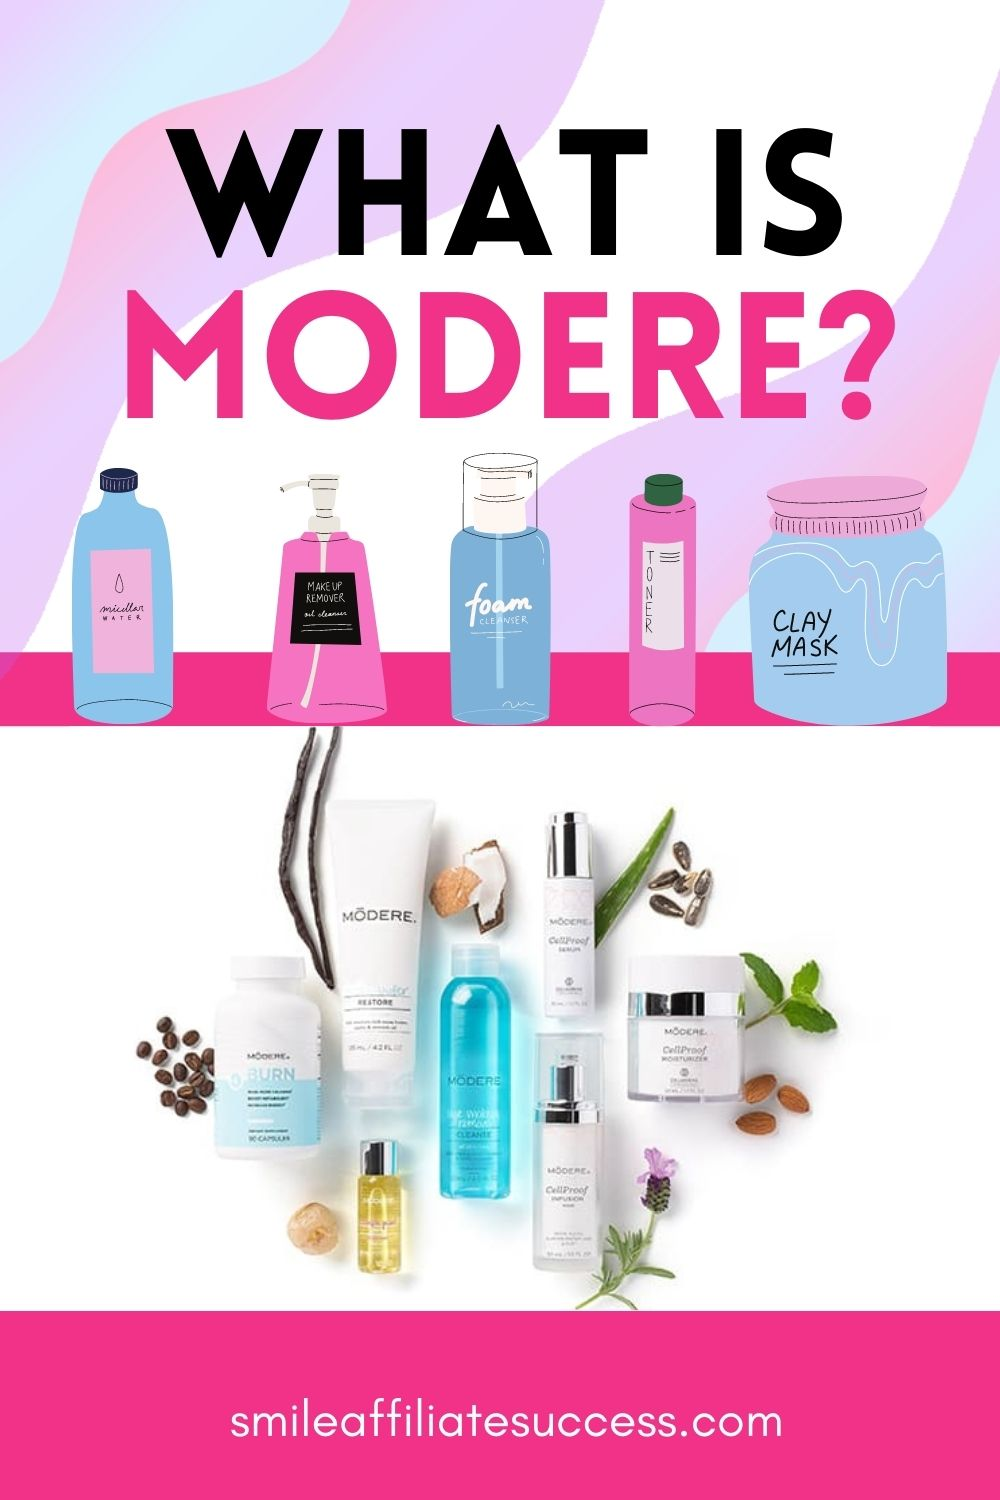 What Is Modere?